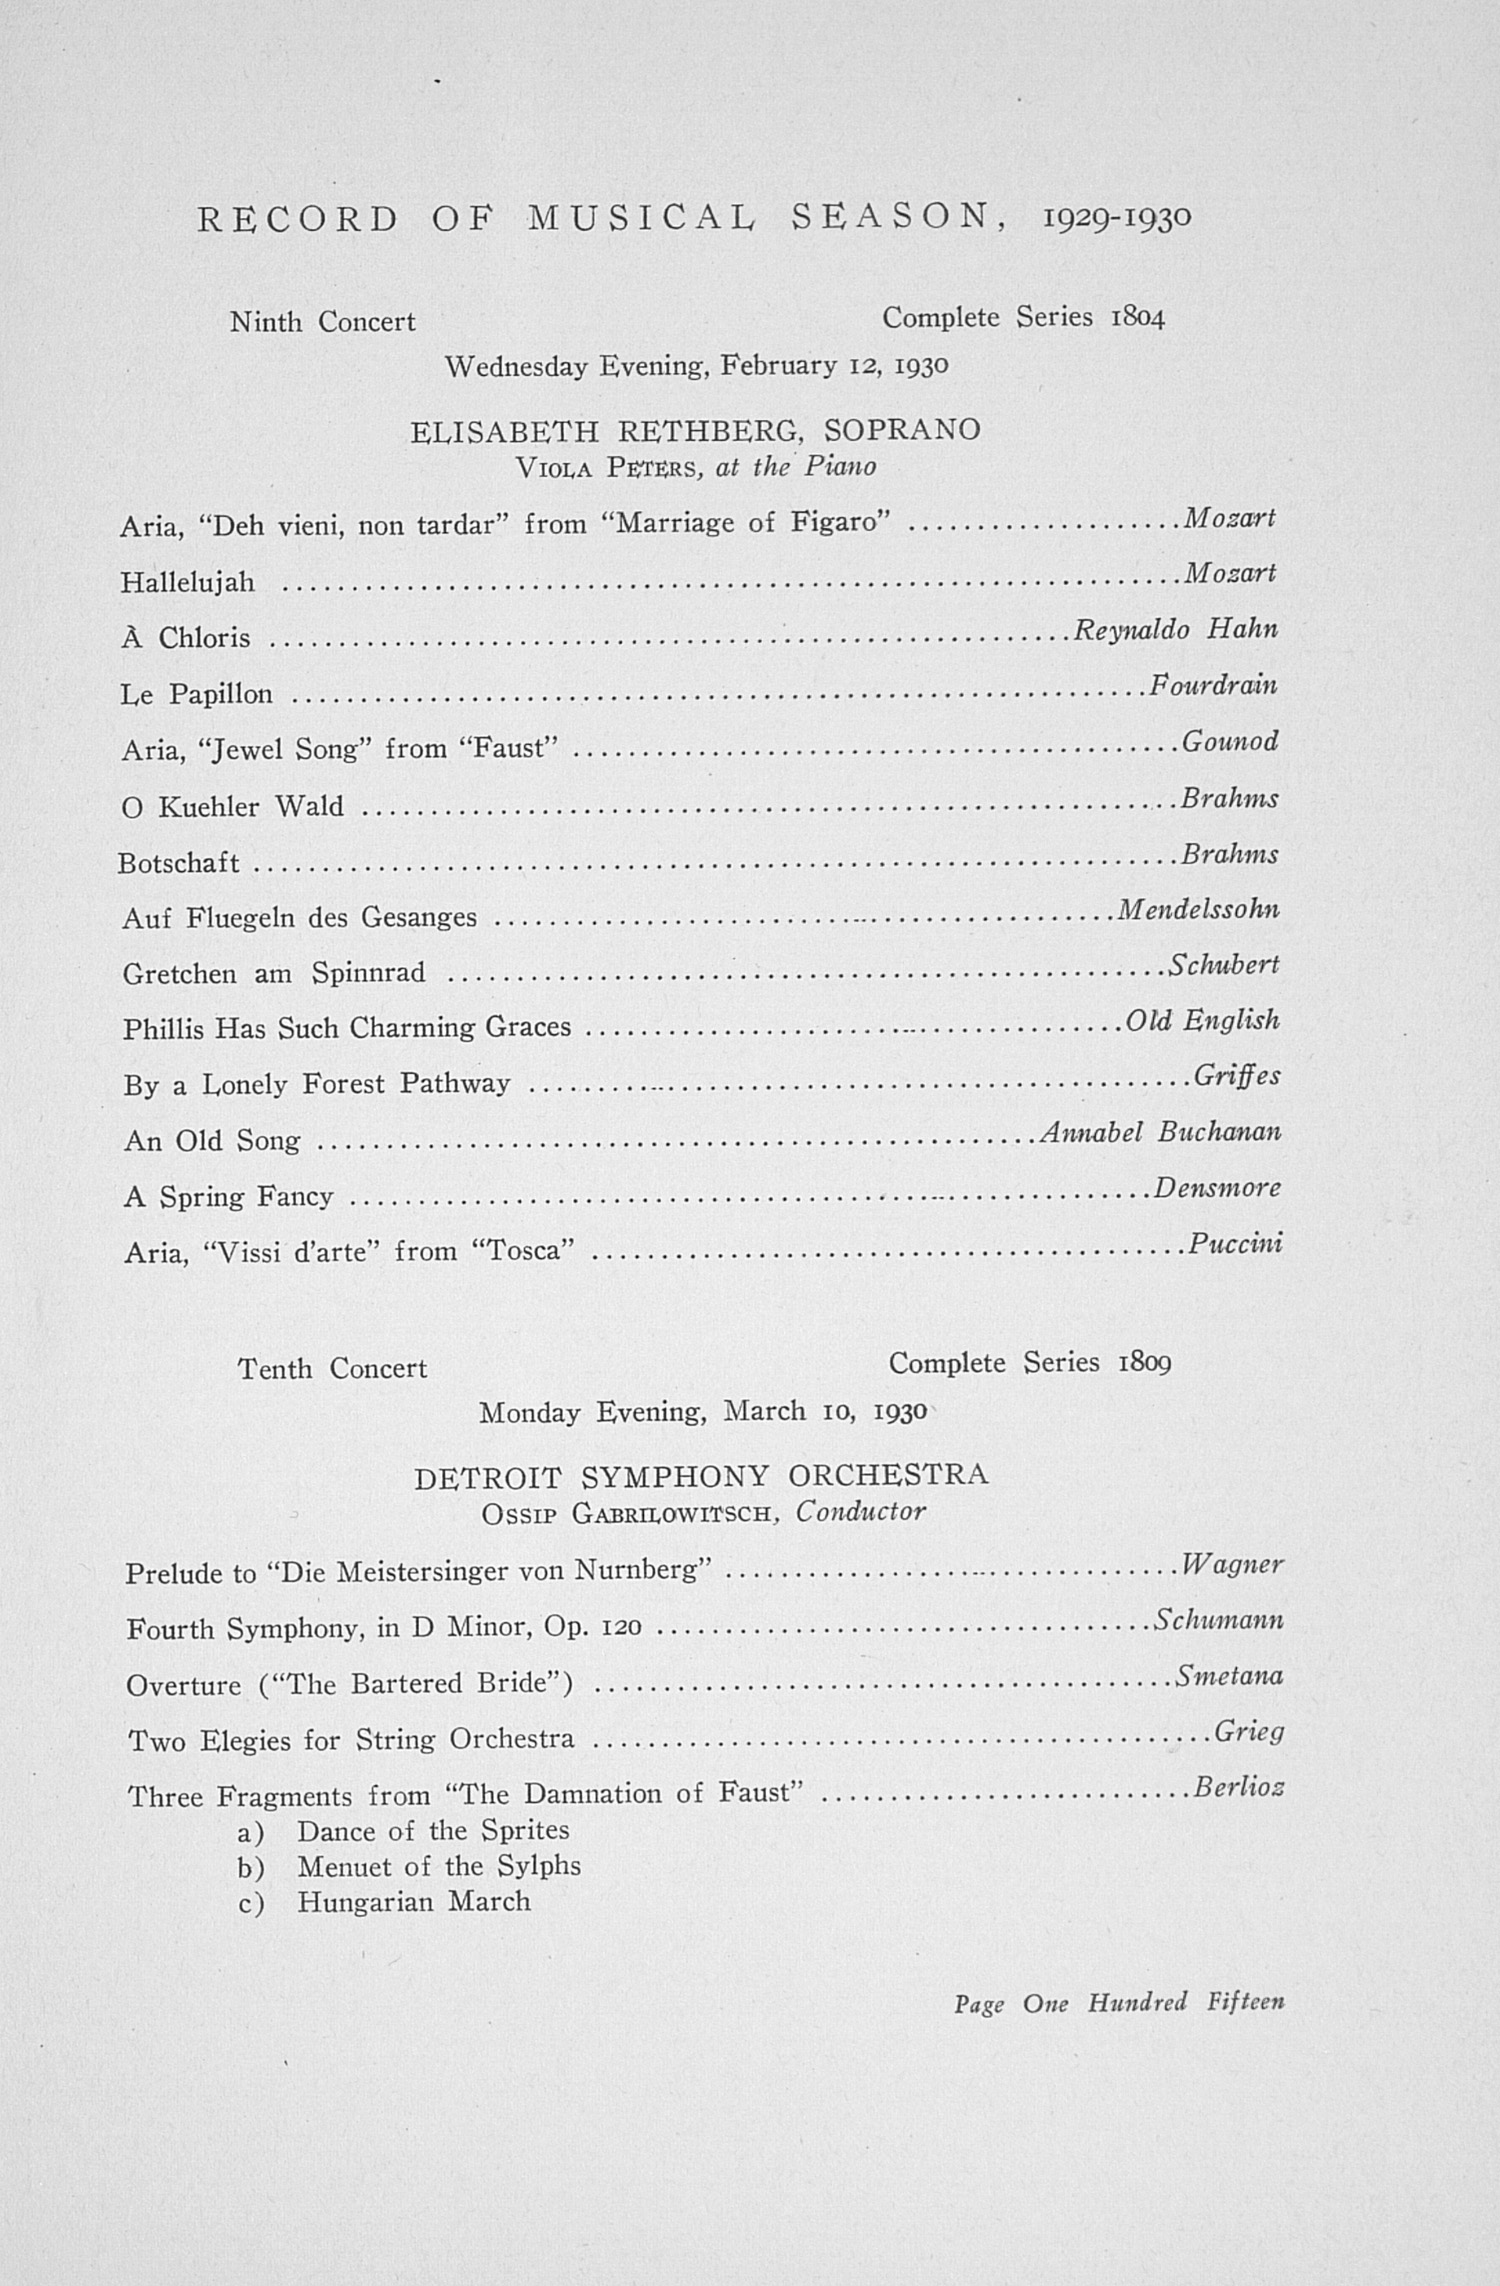 UMS Concert Program, May 14, 15, 16, 17 1930: The Thirty-seventh Annual May Festival -- Earl V. Moore image